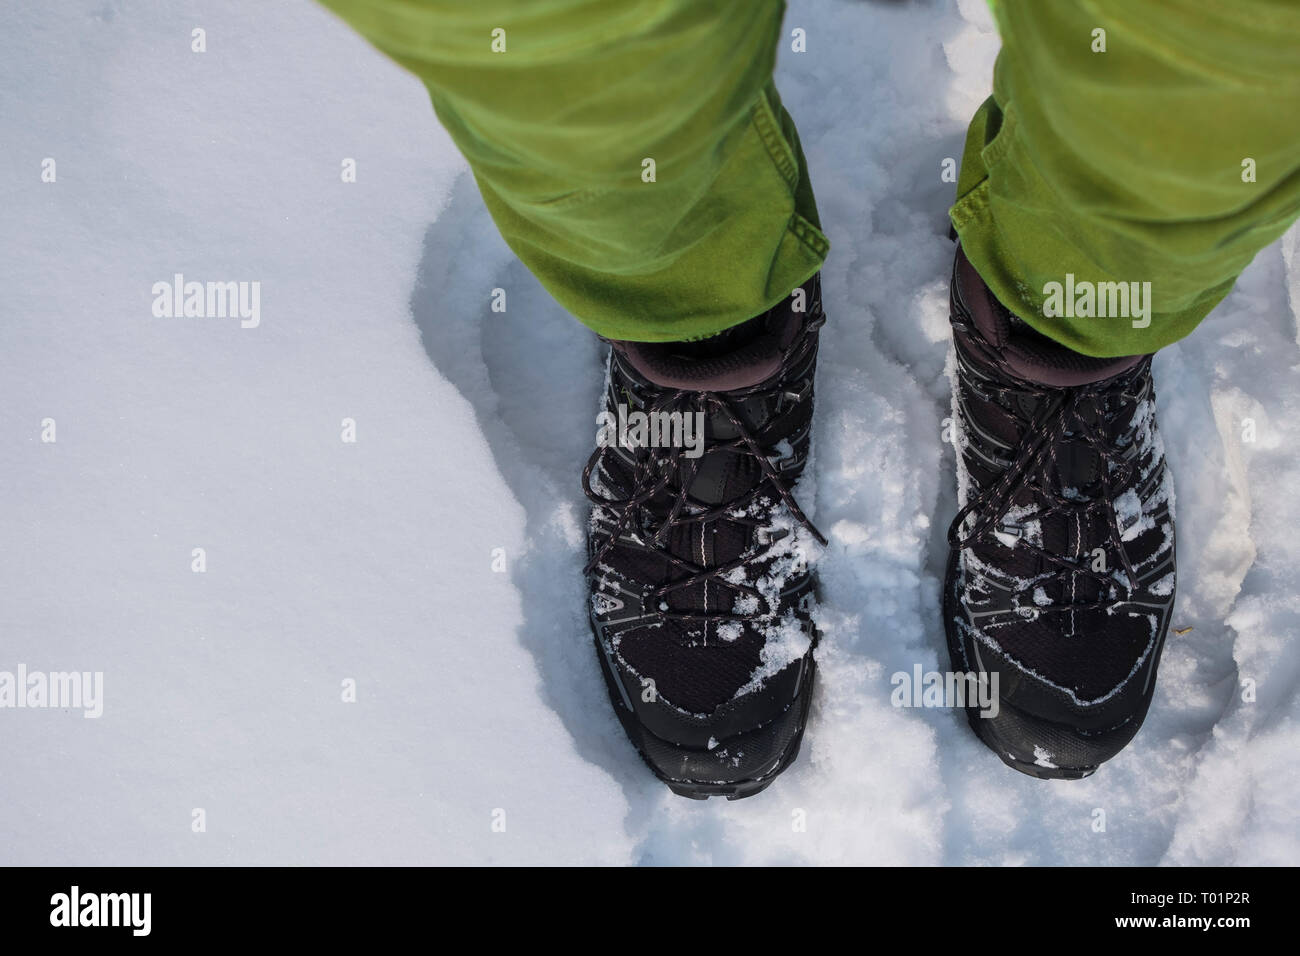 Human feet in hiking boots in the snow - Stock Image